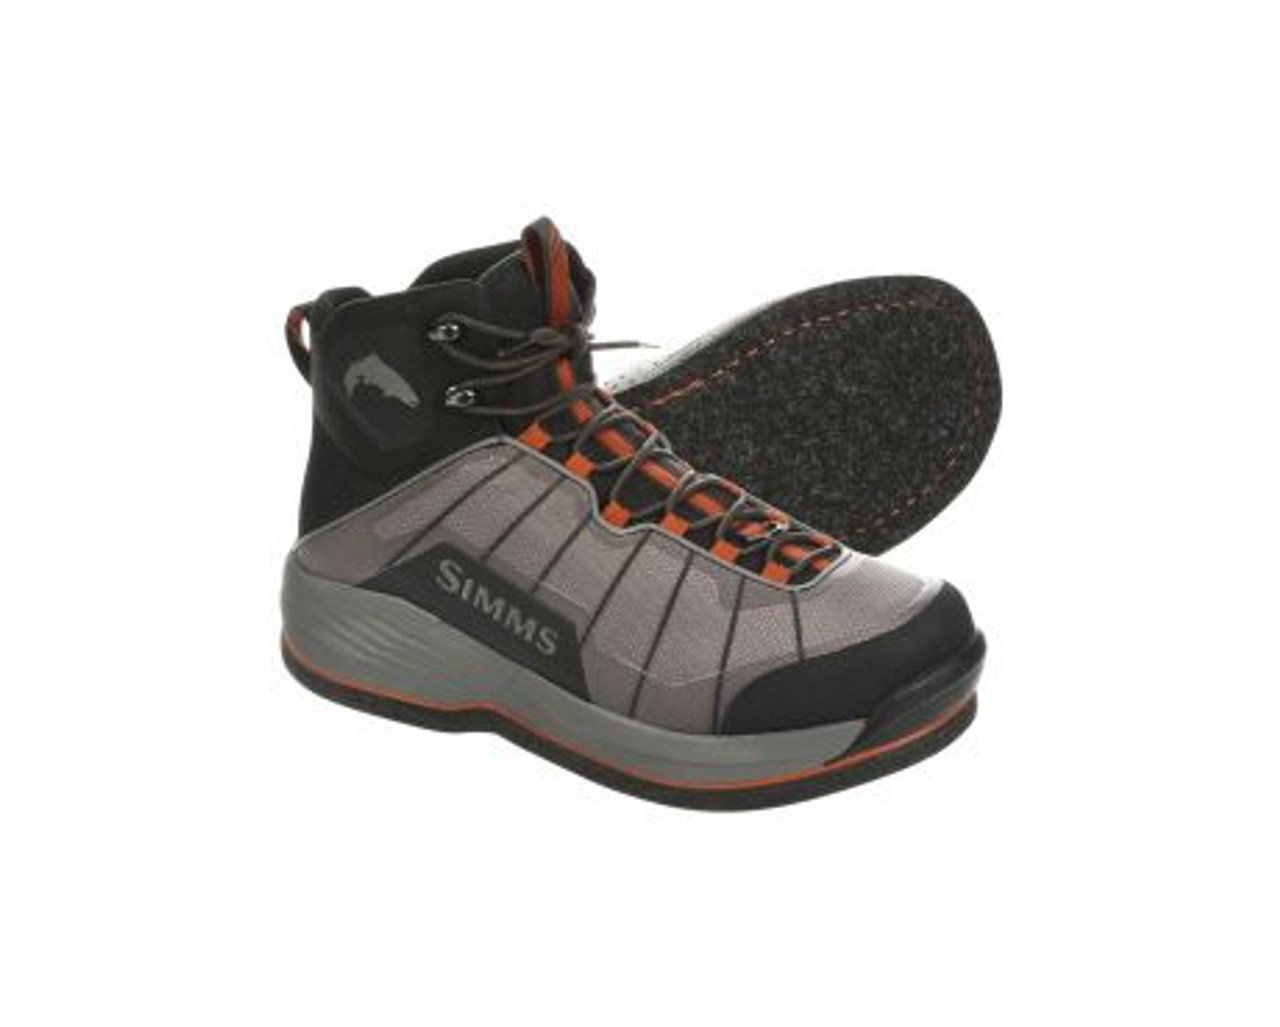 MENS FLYWEIGHT BOOT - FELT